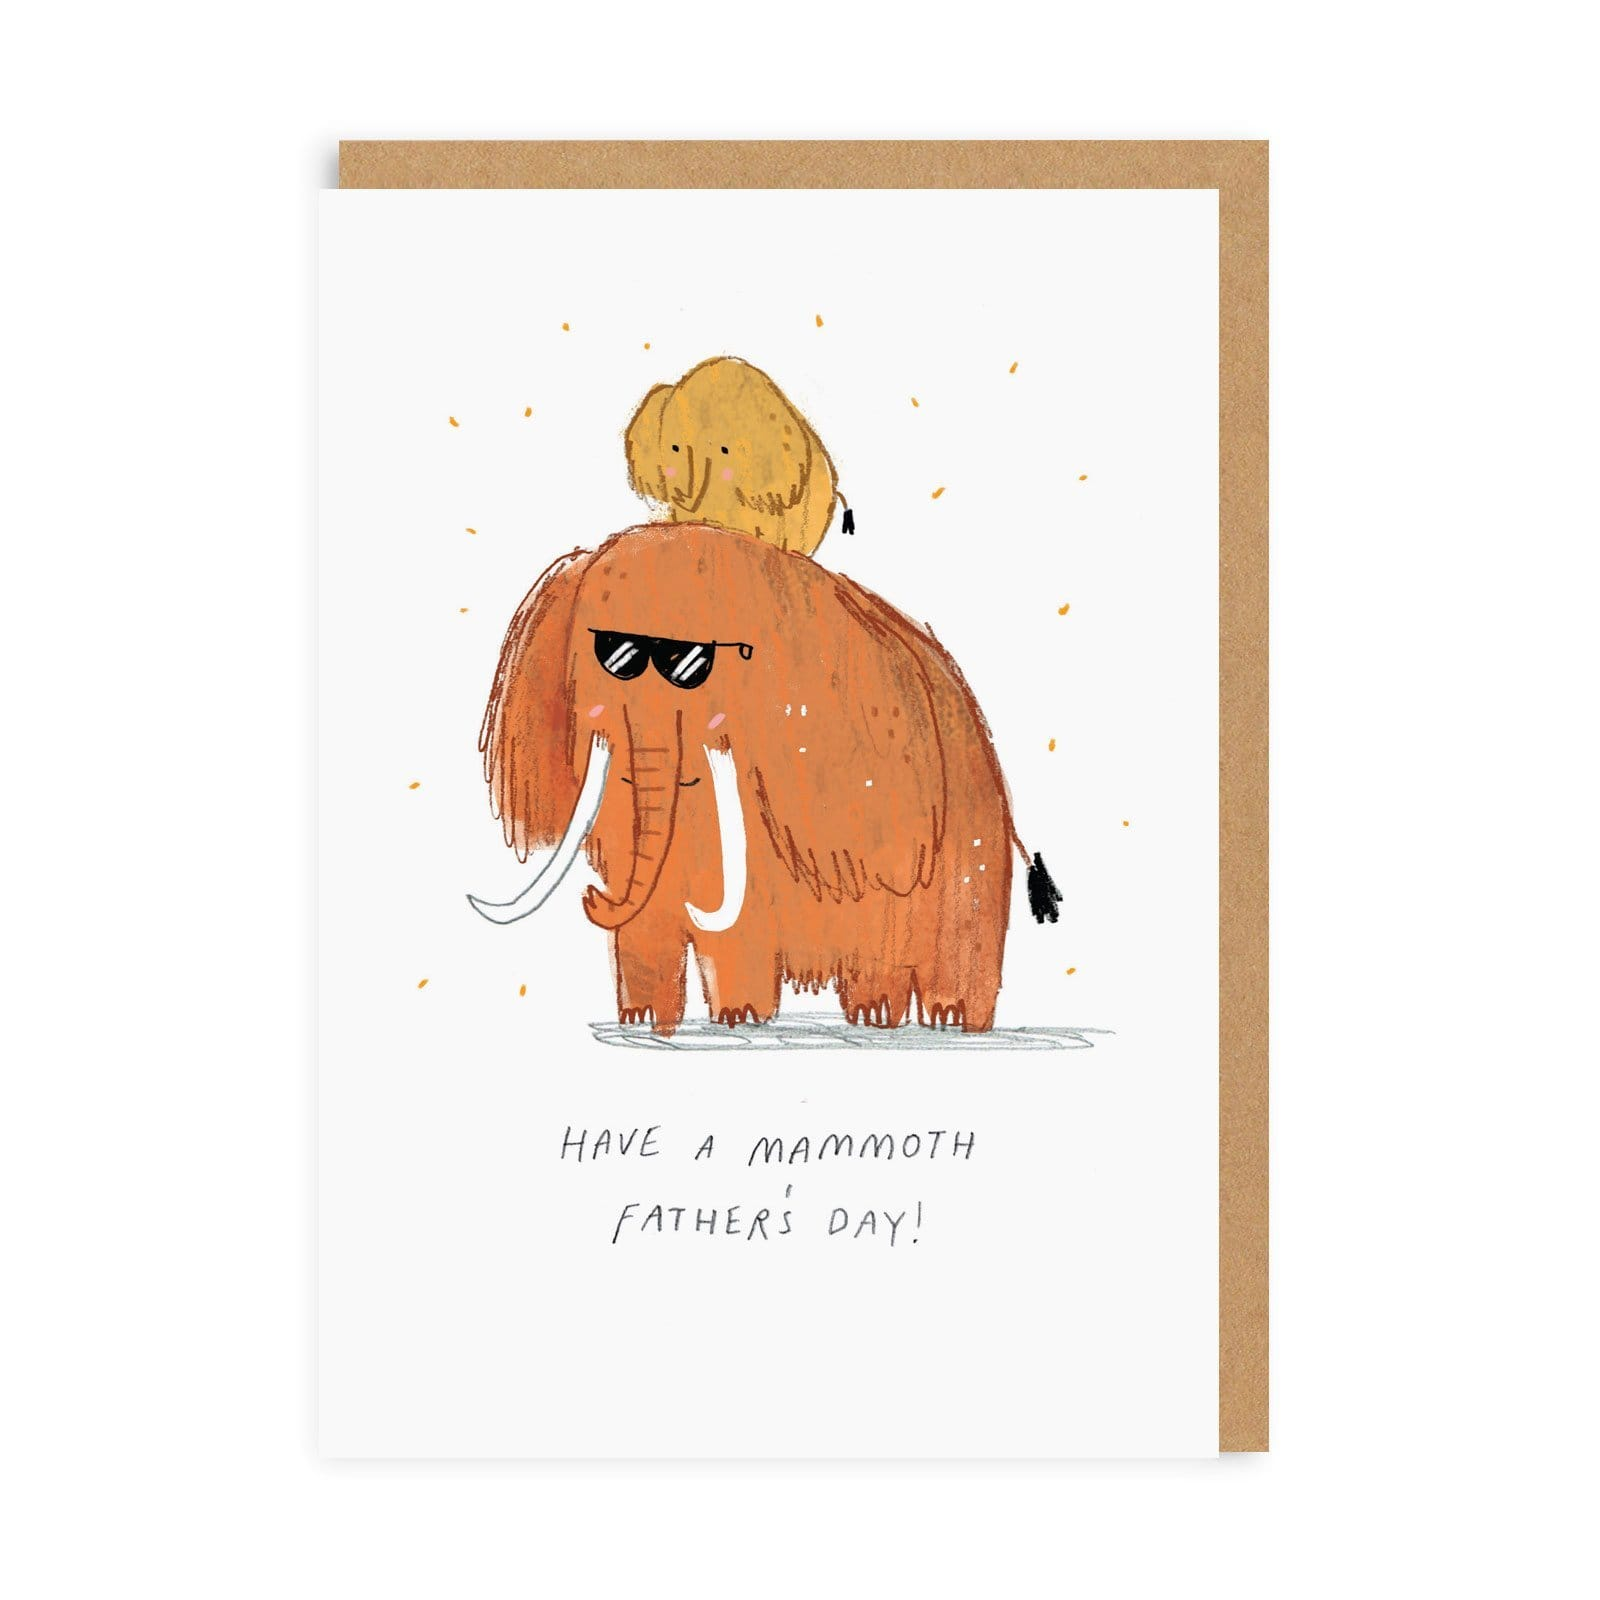 Have A Mammoth Father's Day Greeting Card